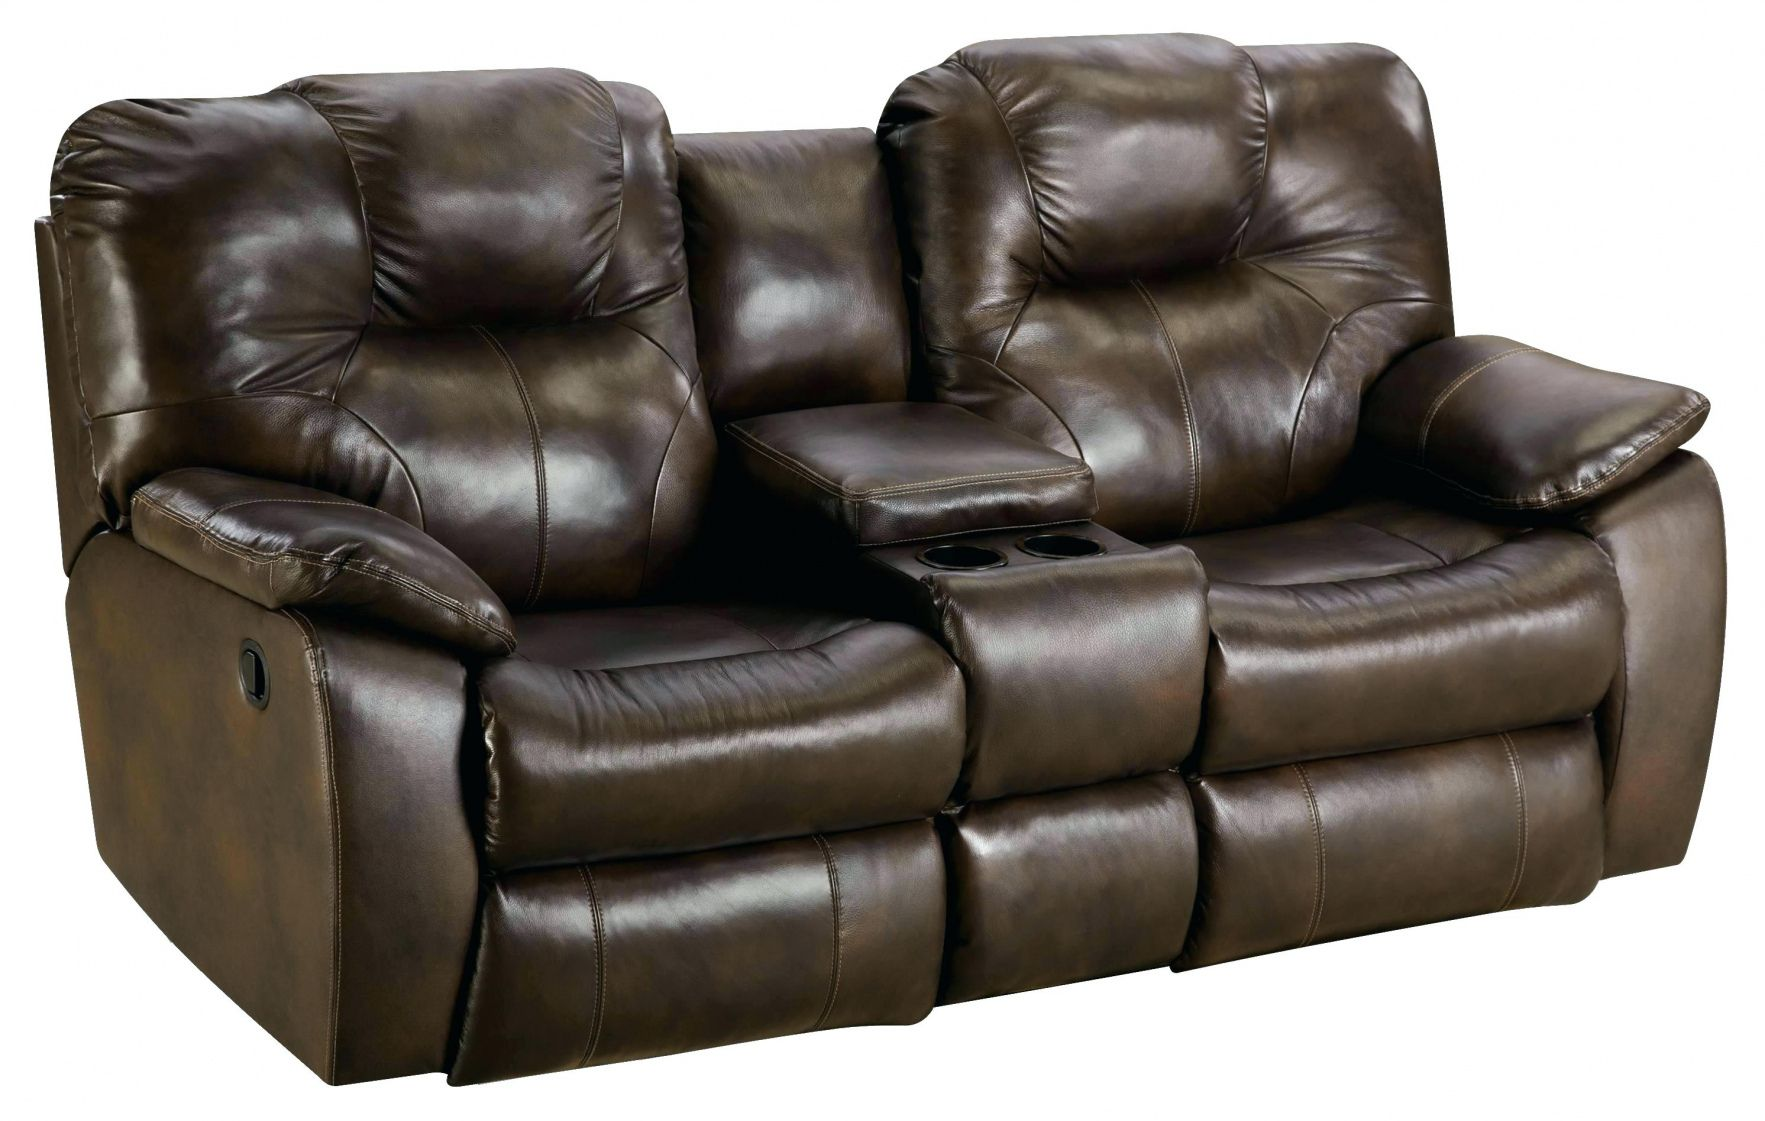 Merveilleux 99+ Leather Recliner Chairs Reviews   Best Furniture Gallery Check More At  Http:/